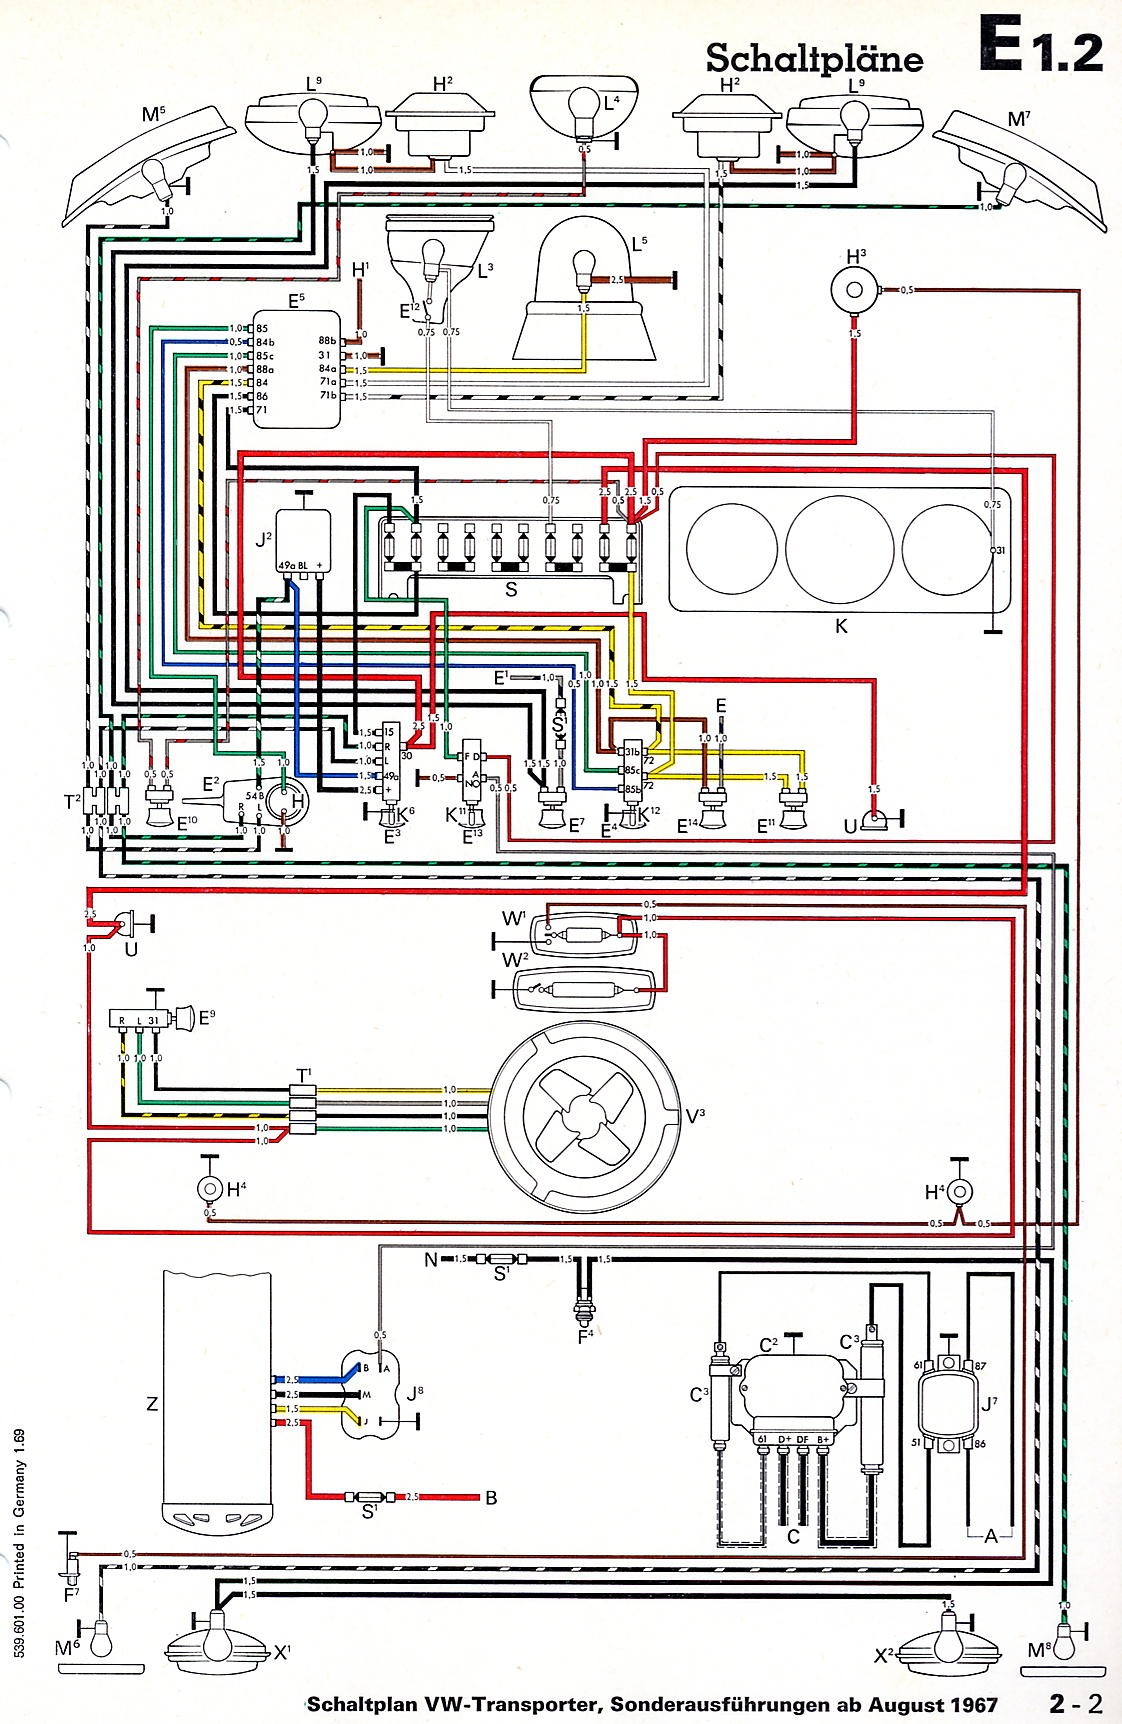 2001 Vw Beetle 2 0 Engine Diagram Wiring Diagram In Addition Vw Beetle Voltage Regulator Wiring Of 2001 Vw Beetle 2 0 Engine Diagram